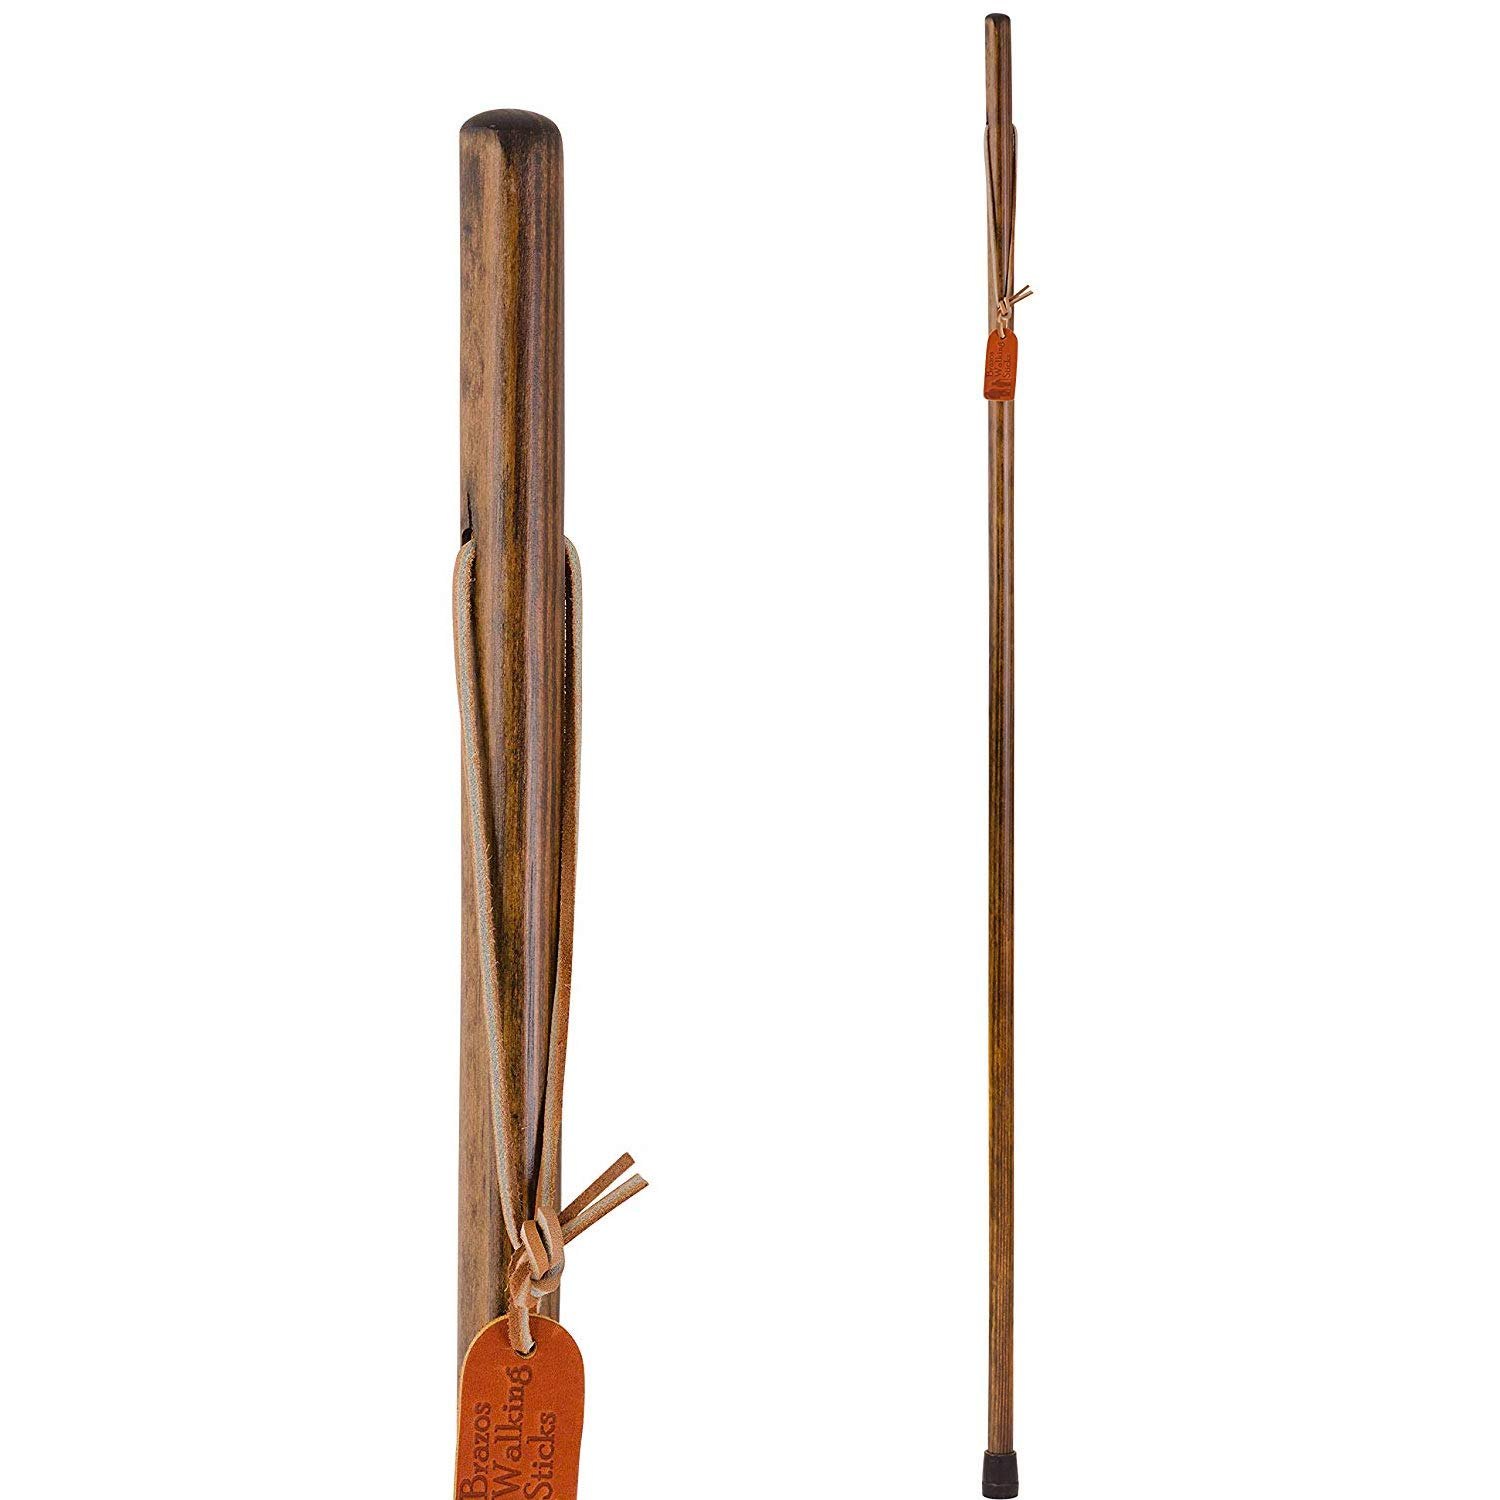 Brazos 41 Free Form Pine Wood Walking Stick Hiking Trekking Pole, Brown, Made in the USA